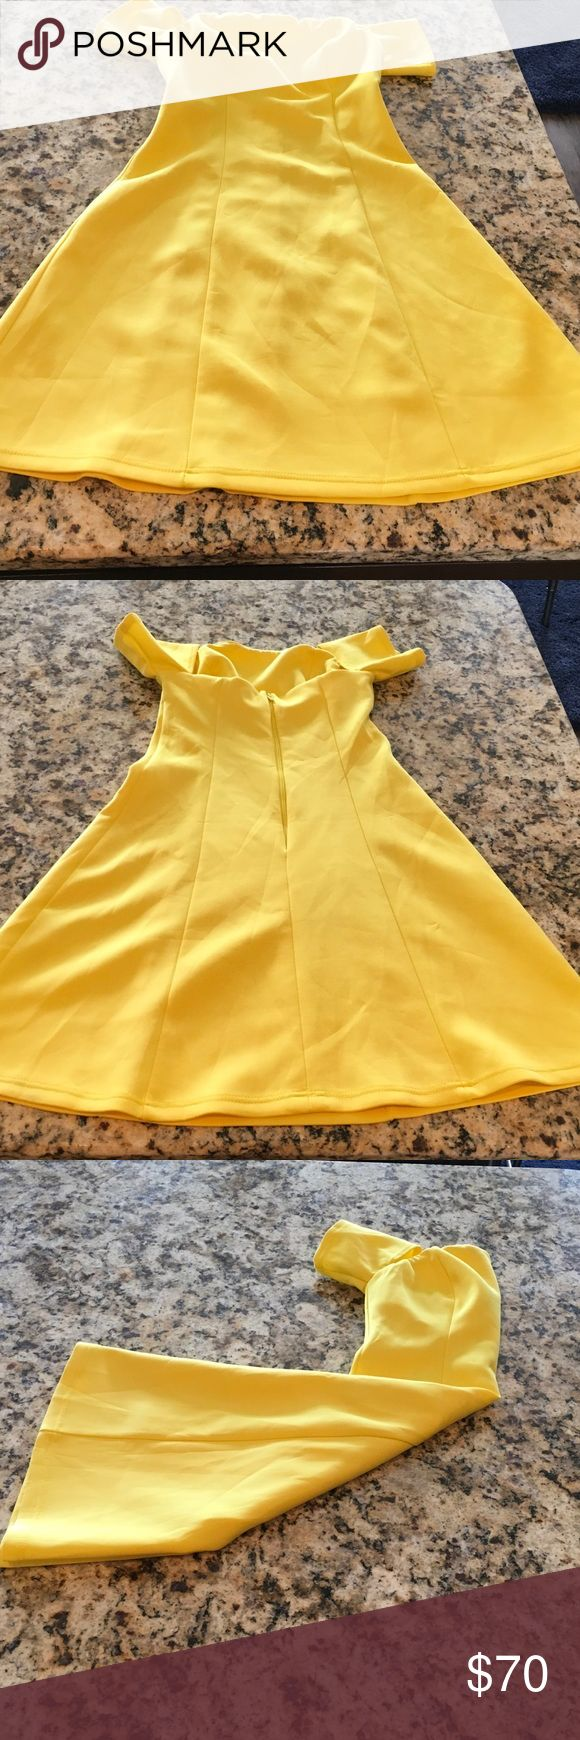 Girls Yellow Party Dress Size 0 ASOS Dresses Formal